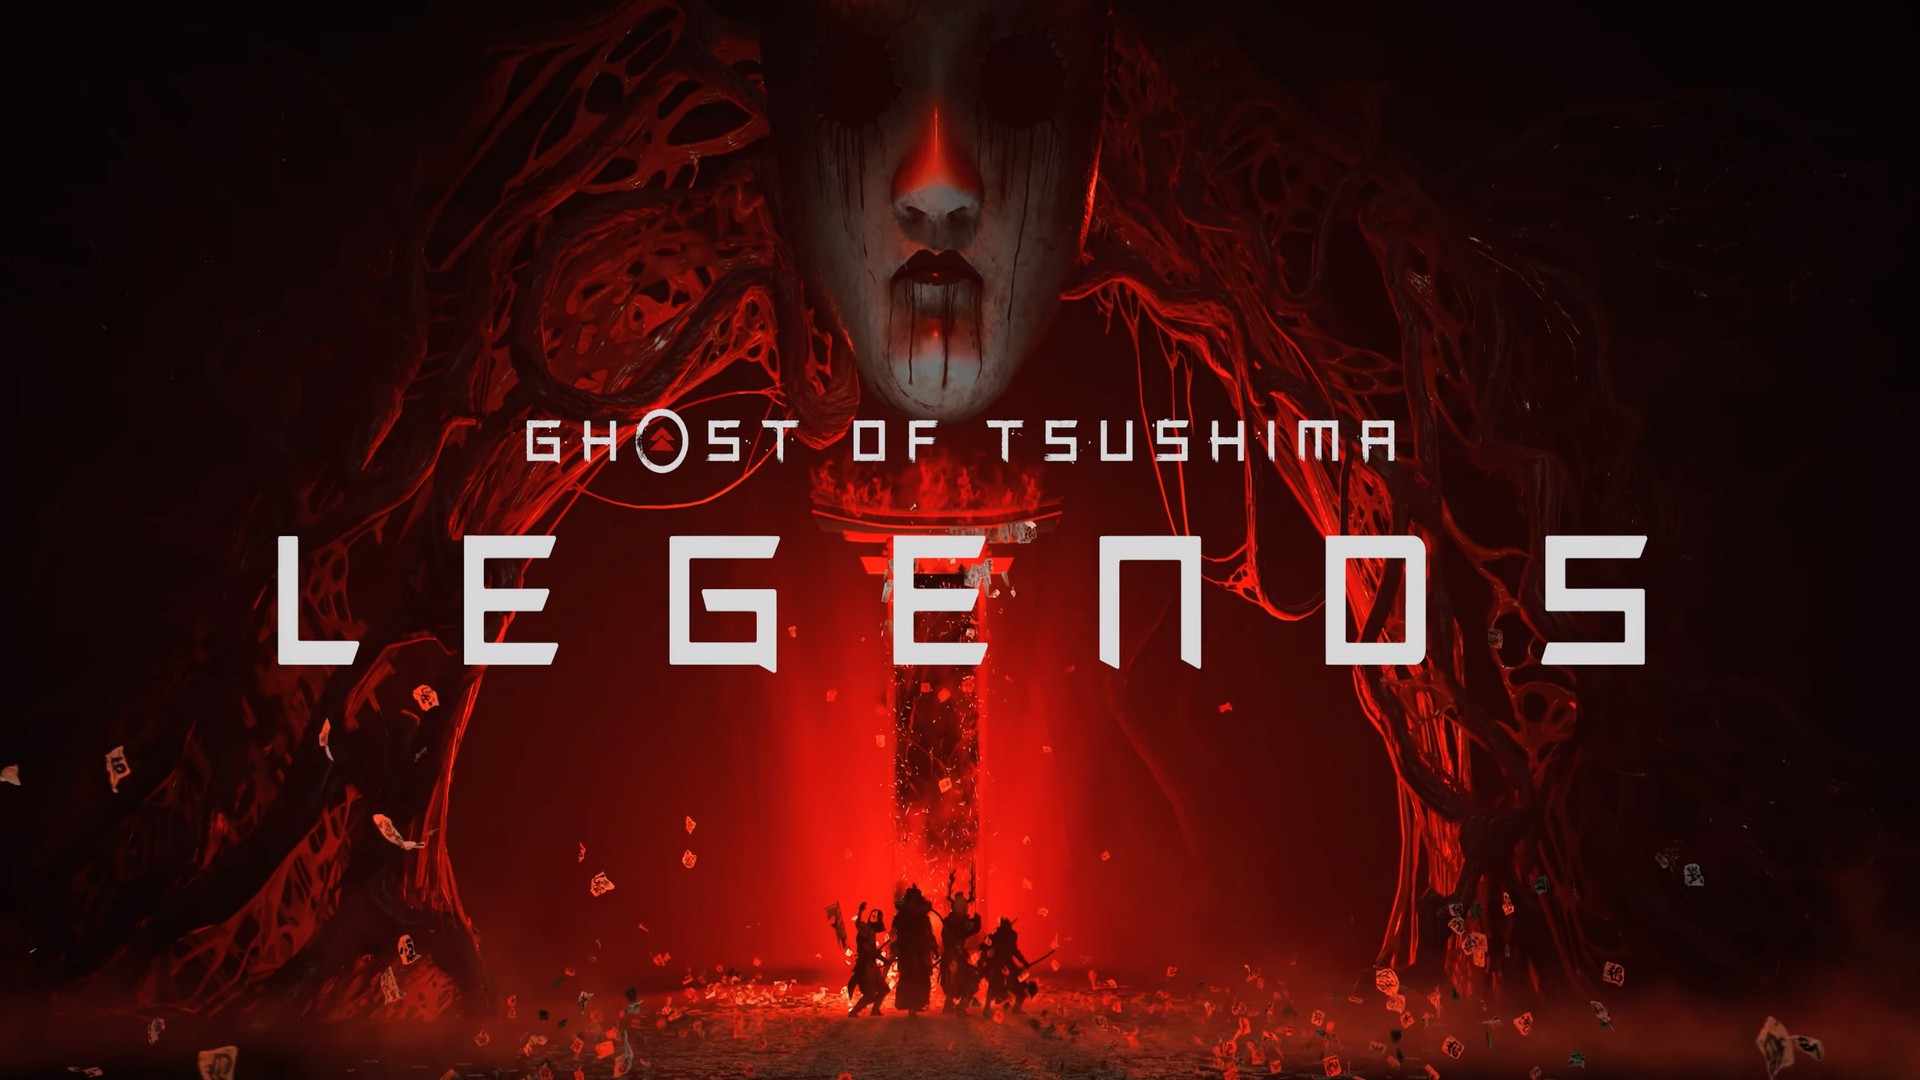 Ghost of Tsushima: Legends Is Out Now – Here Are 7 Essential Gameplay Tips